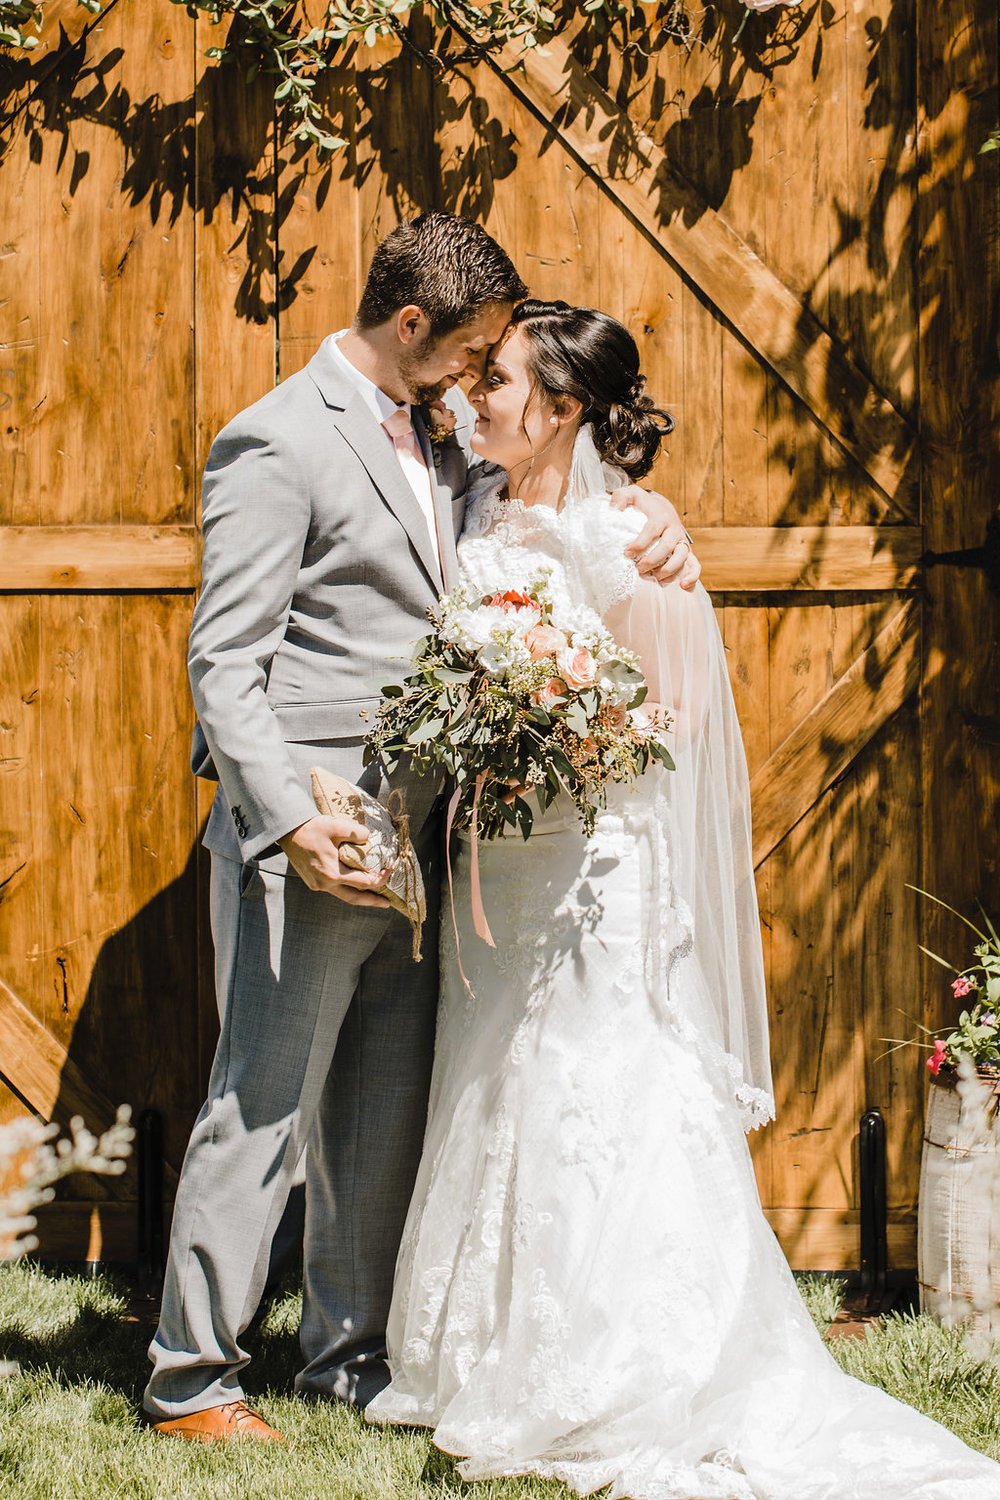 bride and groom after wedding ceremony happy couple central utah wedding photography barn wood